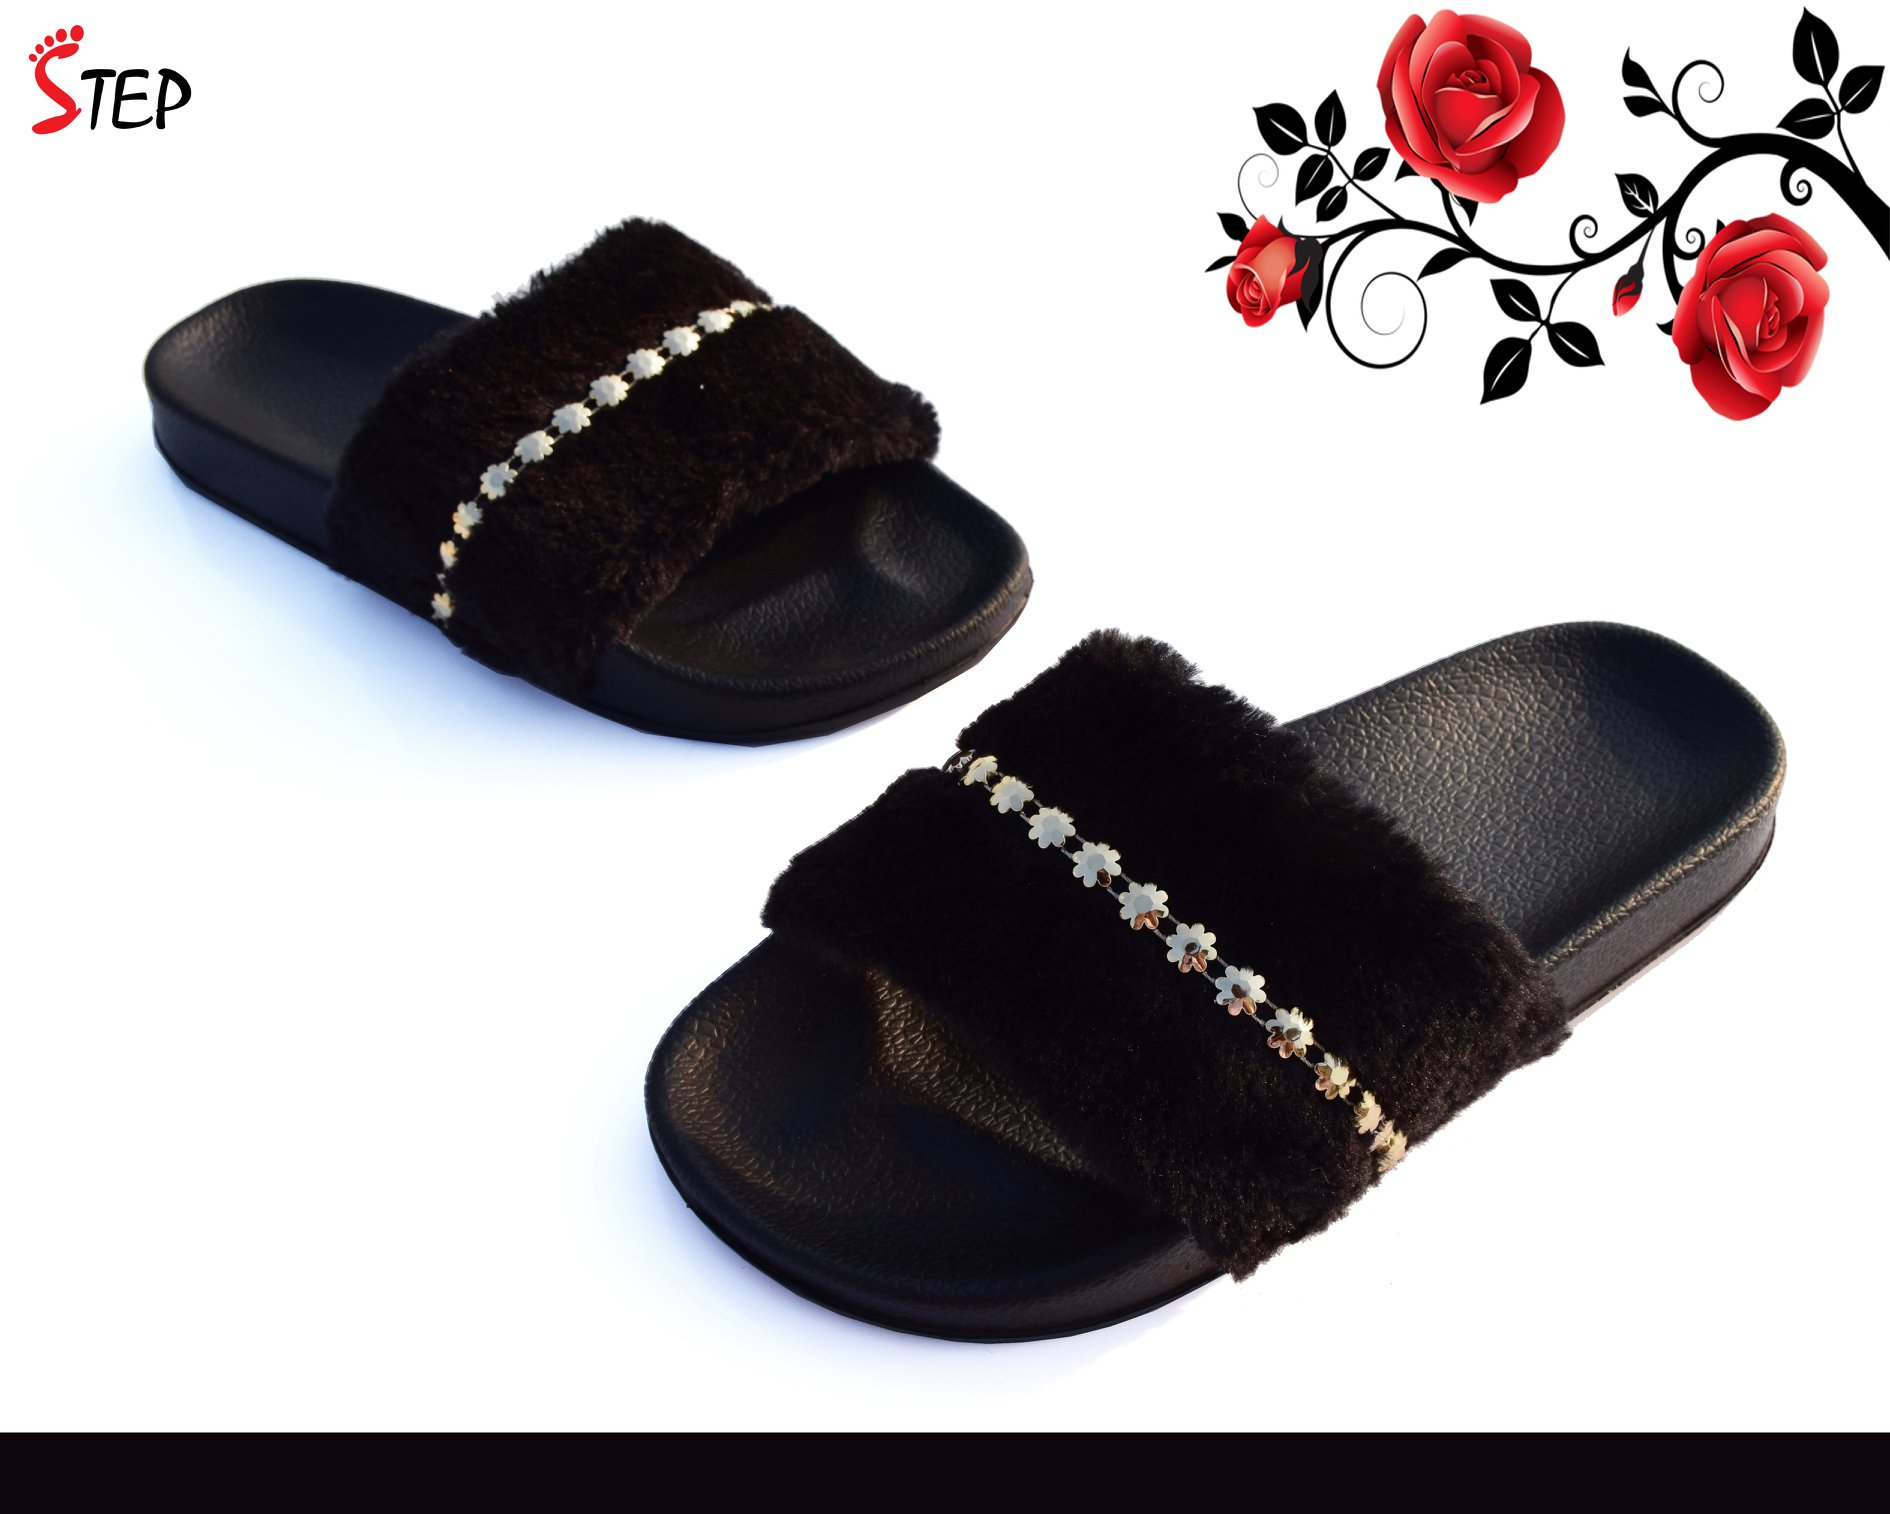 Exclusive Ladies Footwear (''FLUFFY'')- Product- LC 2080